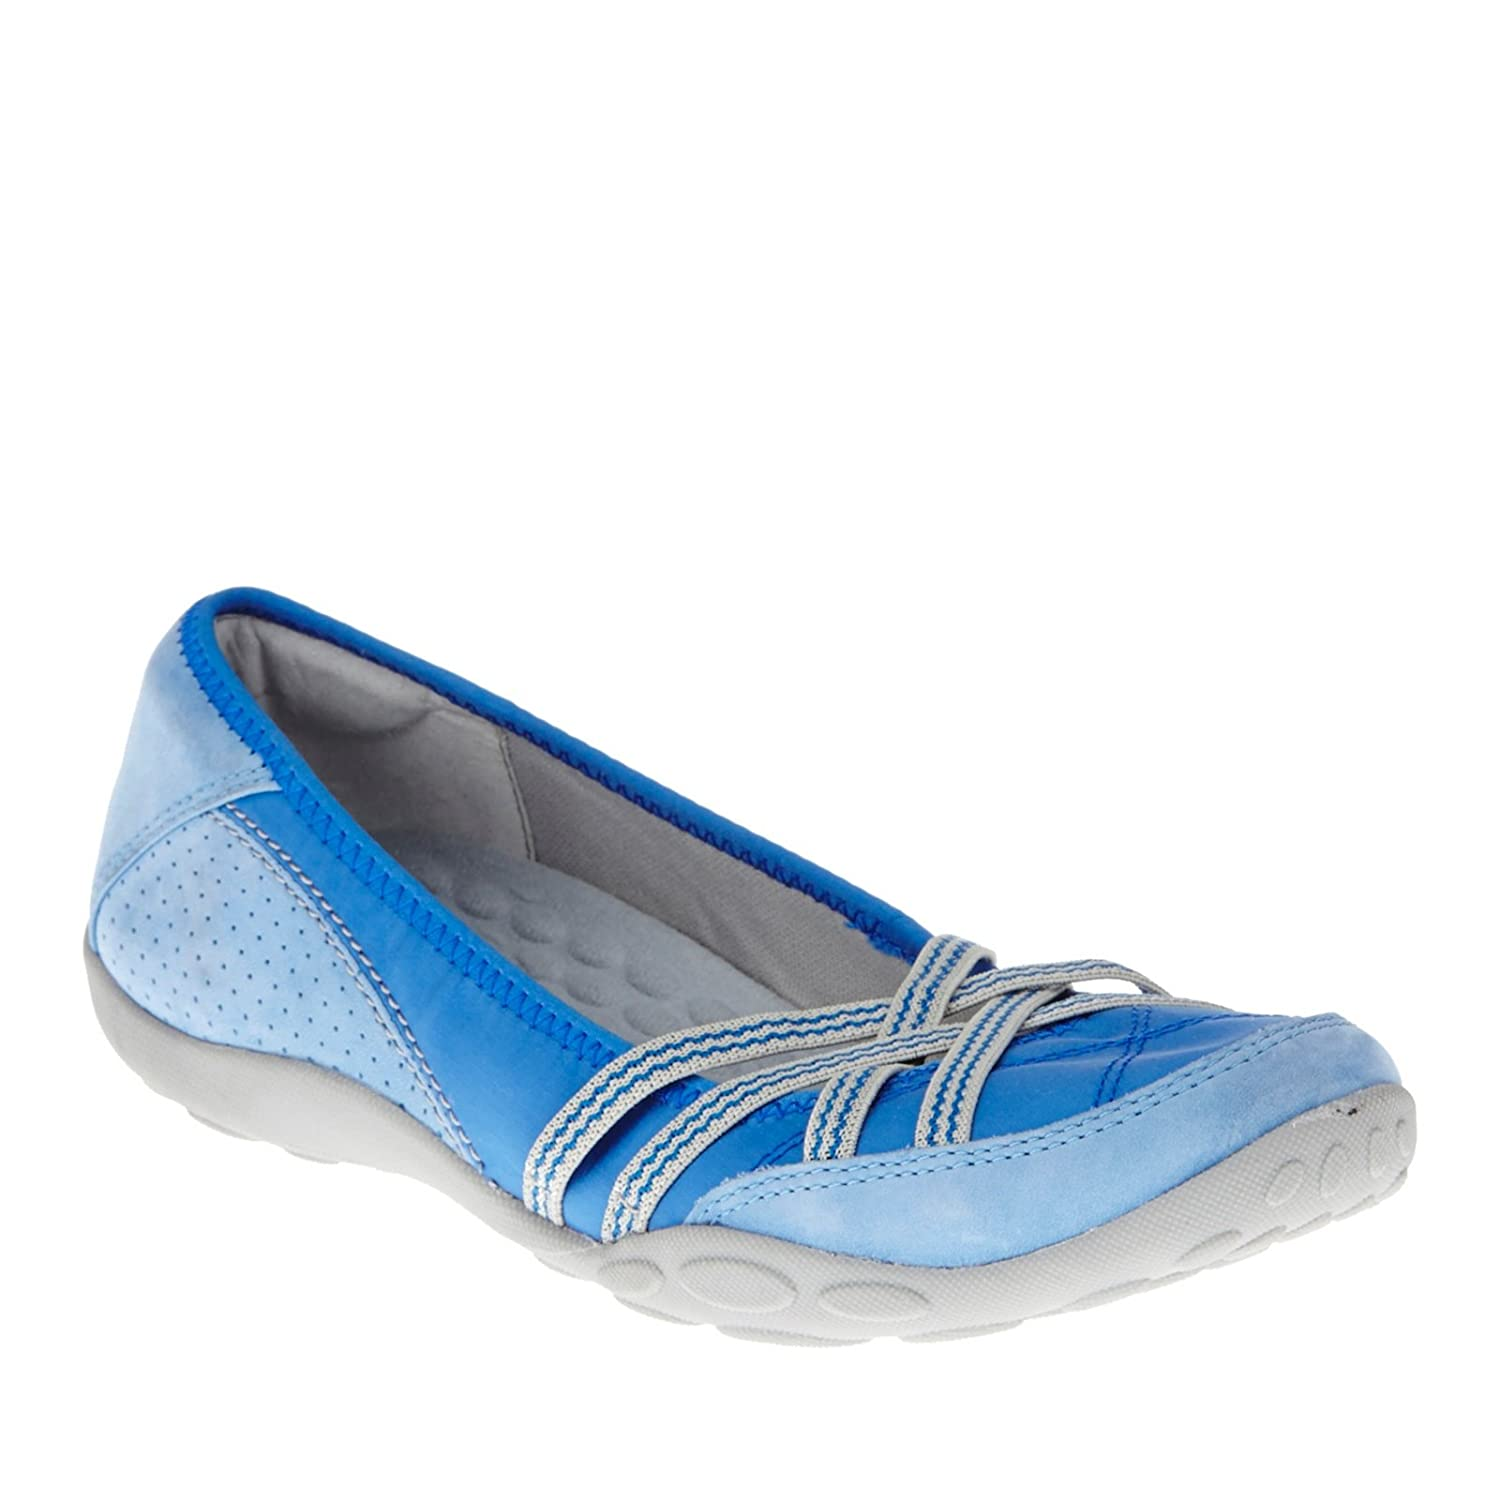 CLARKS Women's Haley Toucan Flat B00E6VO5AA 8 W US|Blue